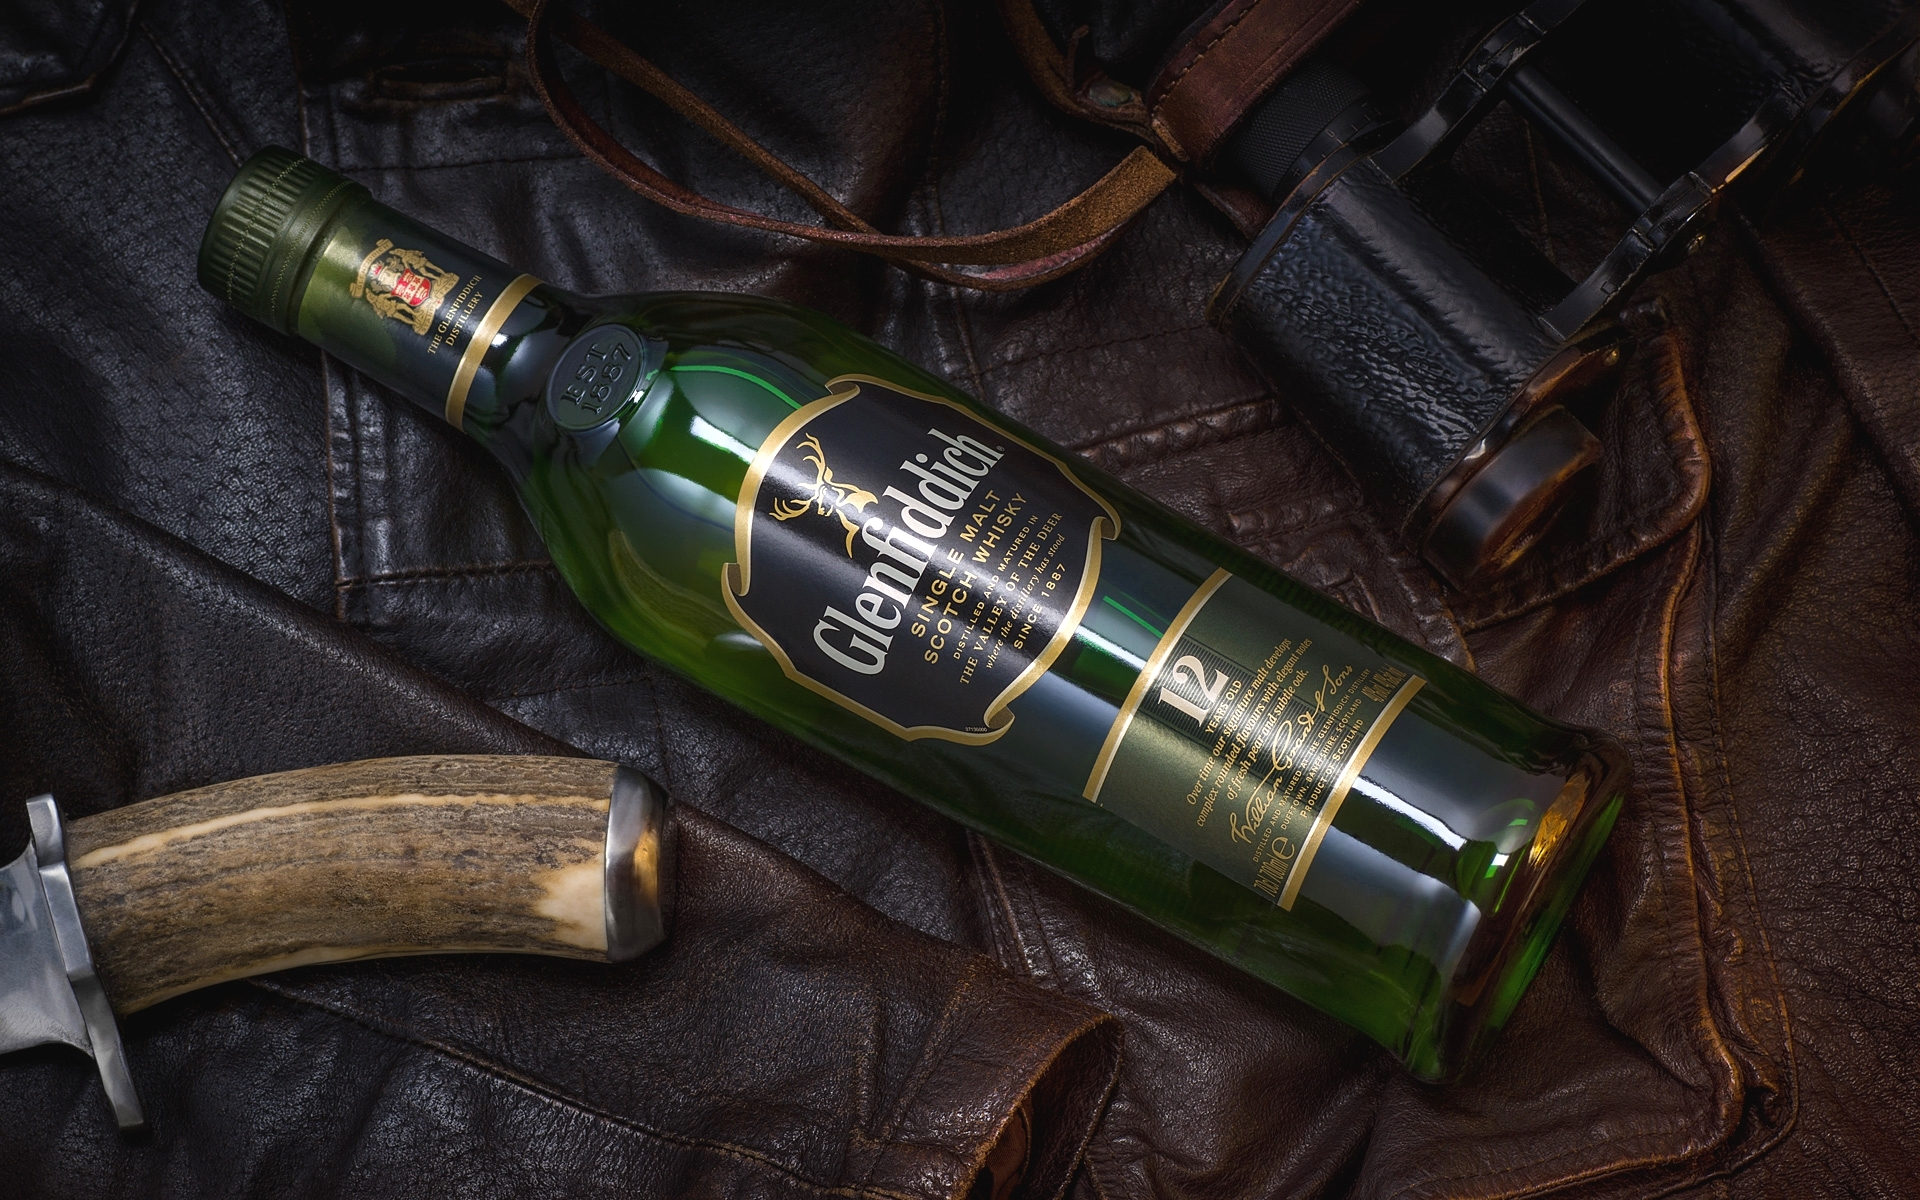 whisky, Alcohol, Bottles, Glenfiddich Wallpapers HD / Desktop and